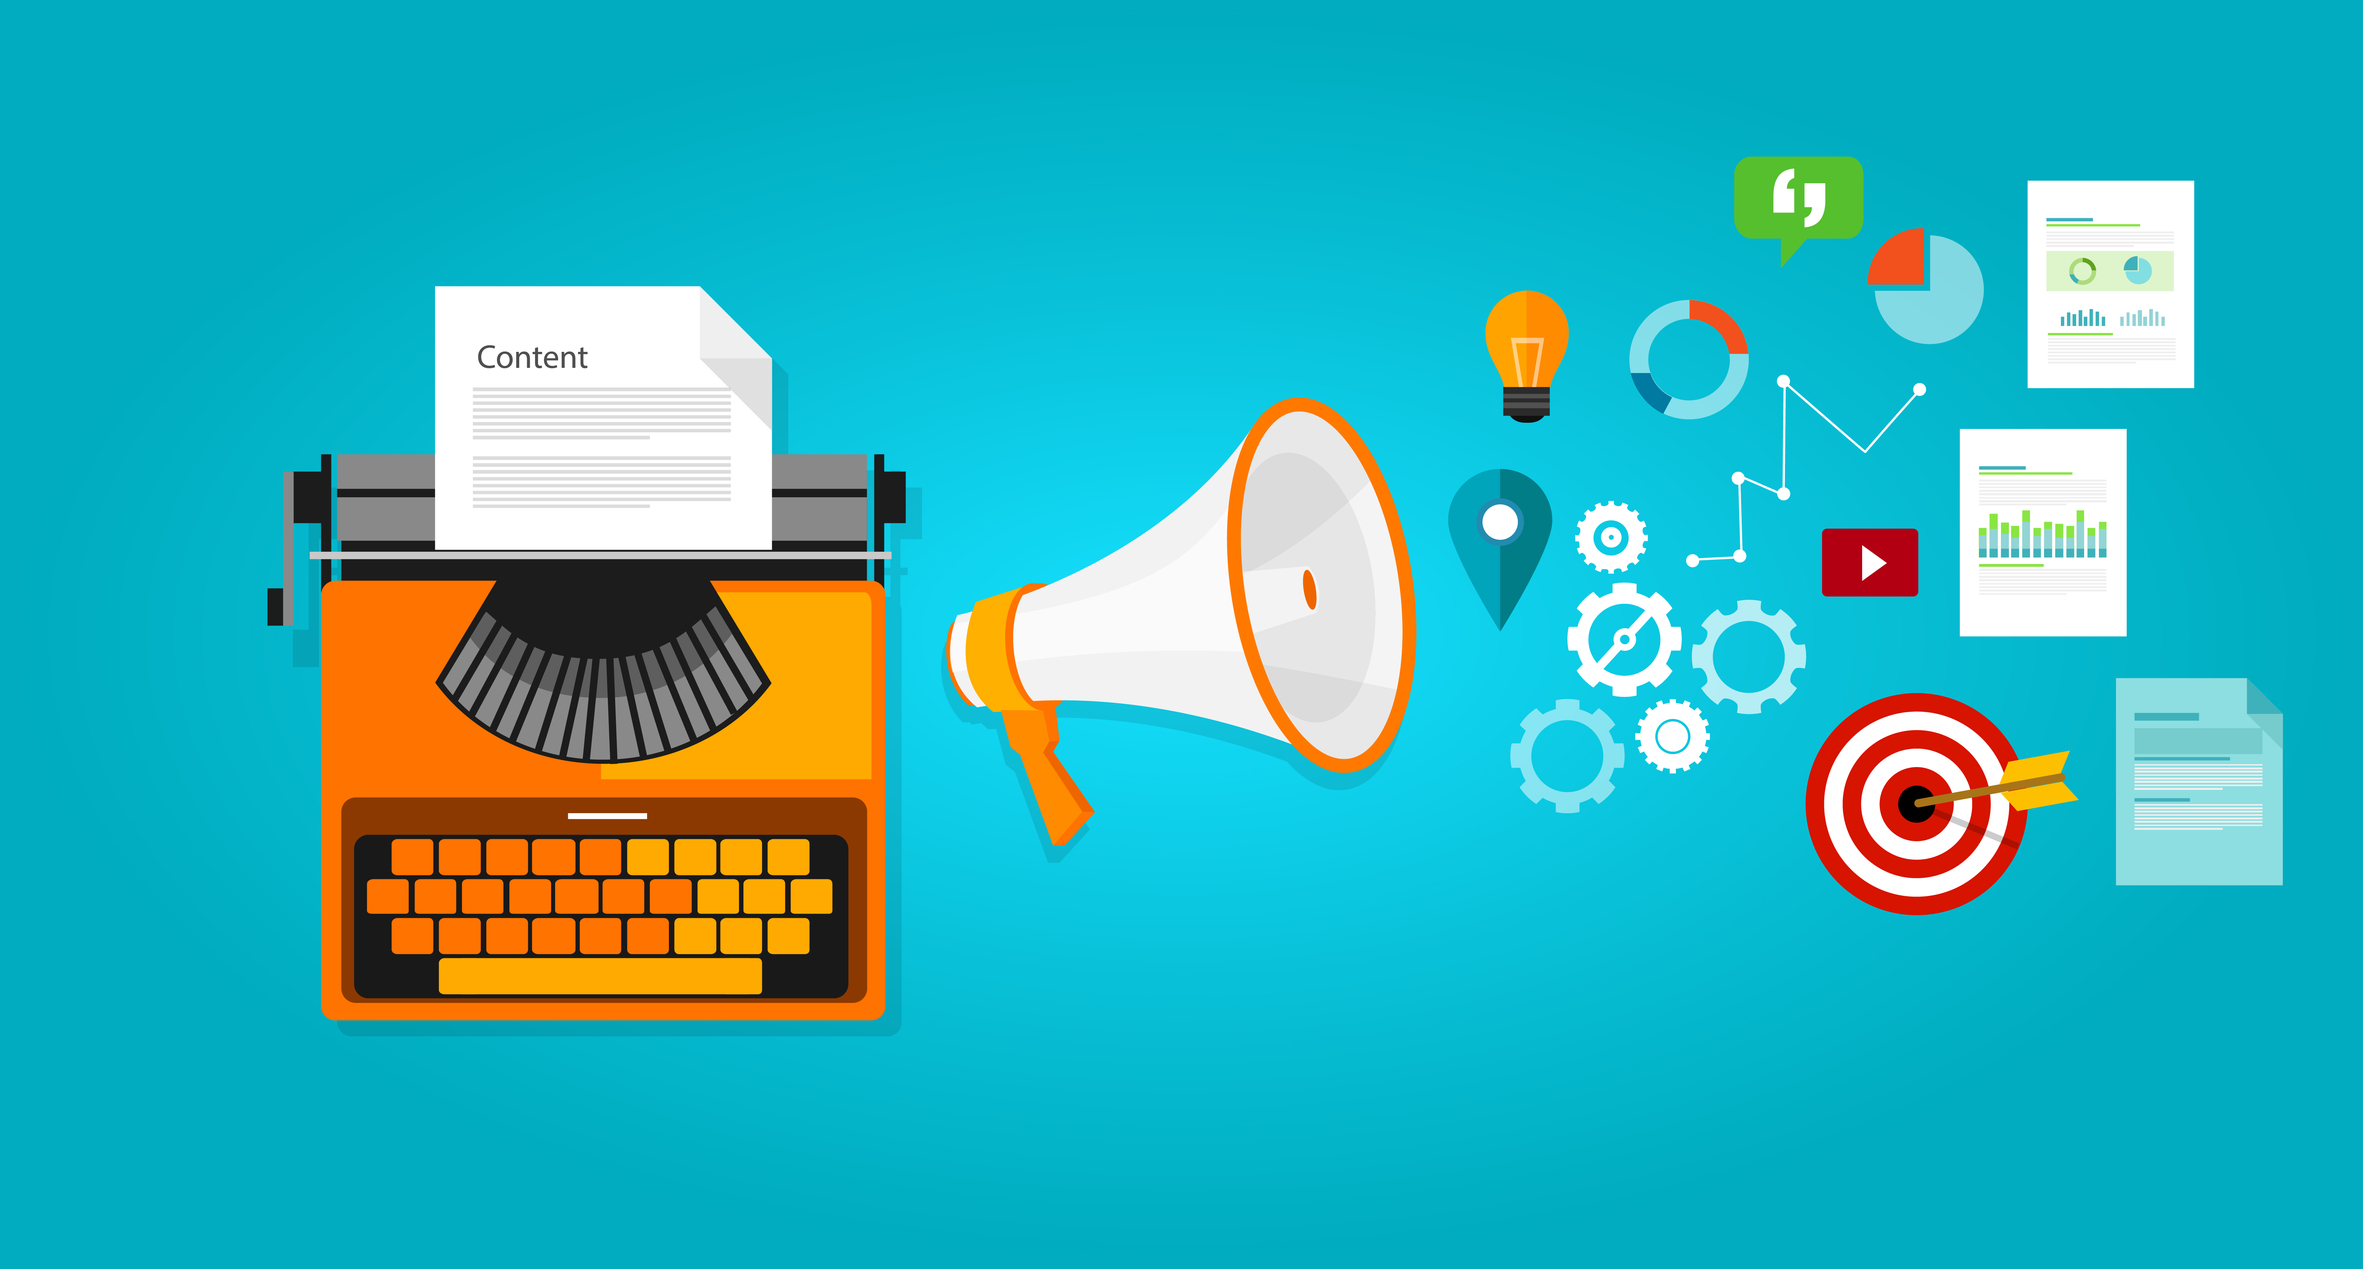 7 steps to marketing content